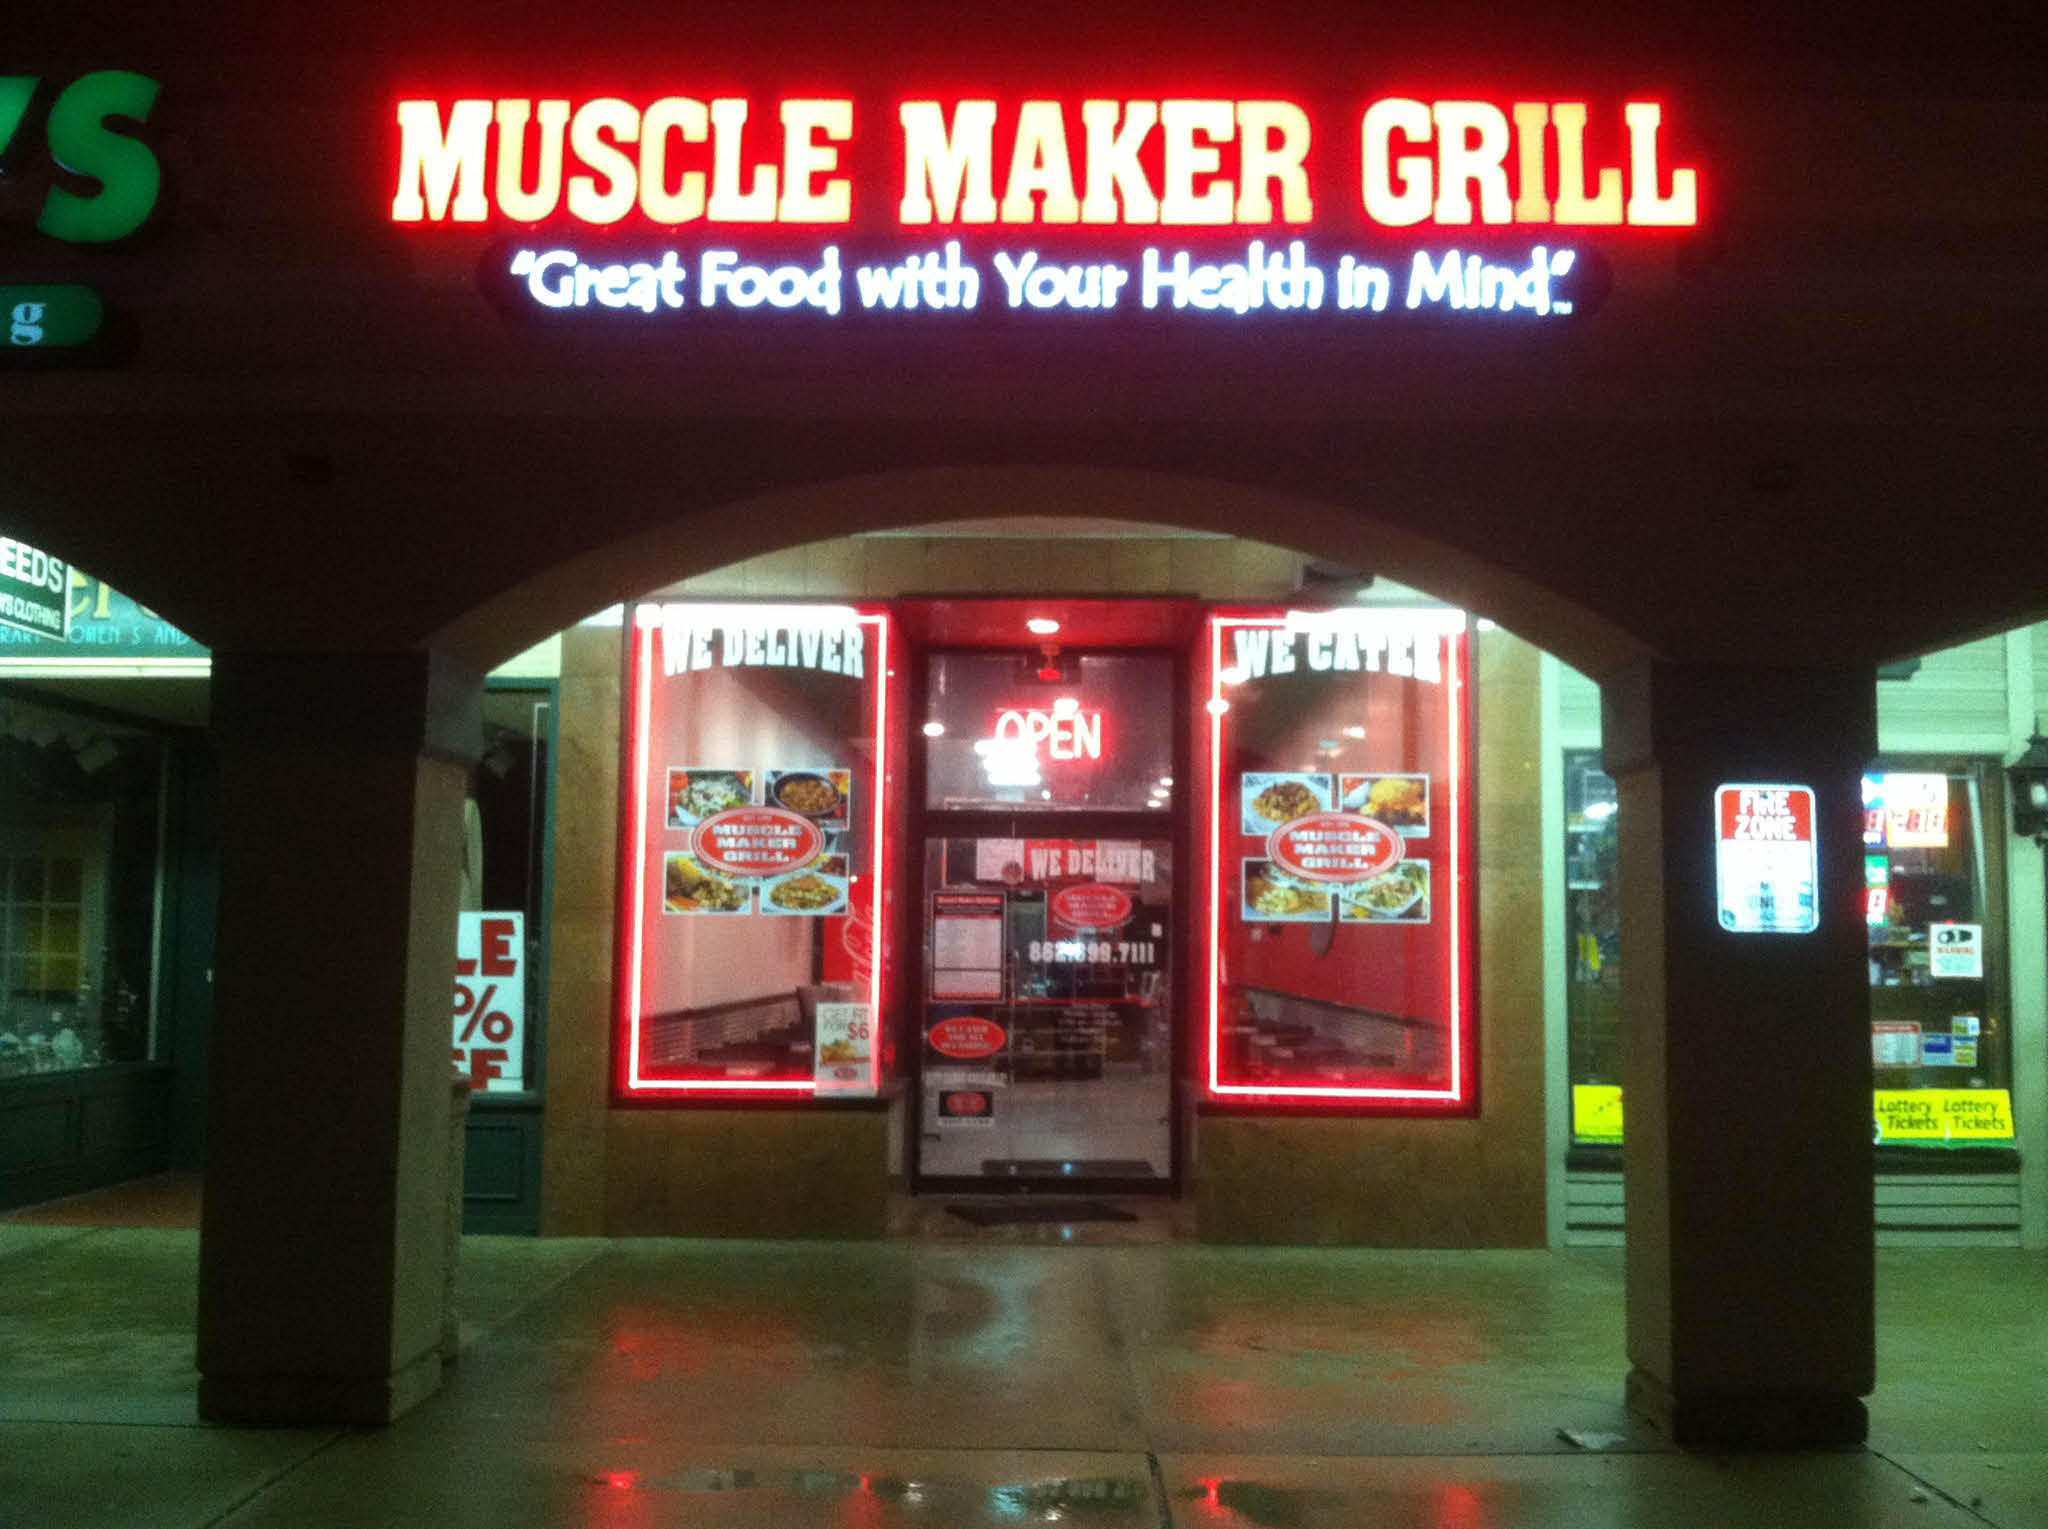 Muscle Maker Grill Clifton New Jersey 07012 grill maker Clifton  New Jersey Muscle Maker Clifton New Jersey Muscle Maker Grill Clifton NJ Muscle Maker Grill Healthy Food Clifton NJ Restaurants Clifton New Jersey